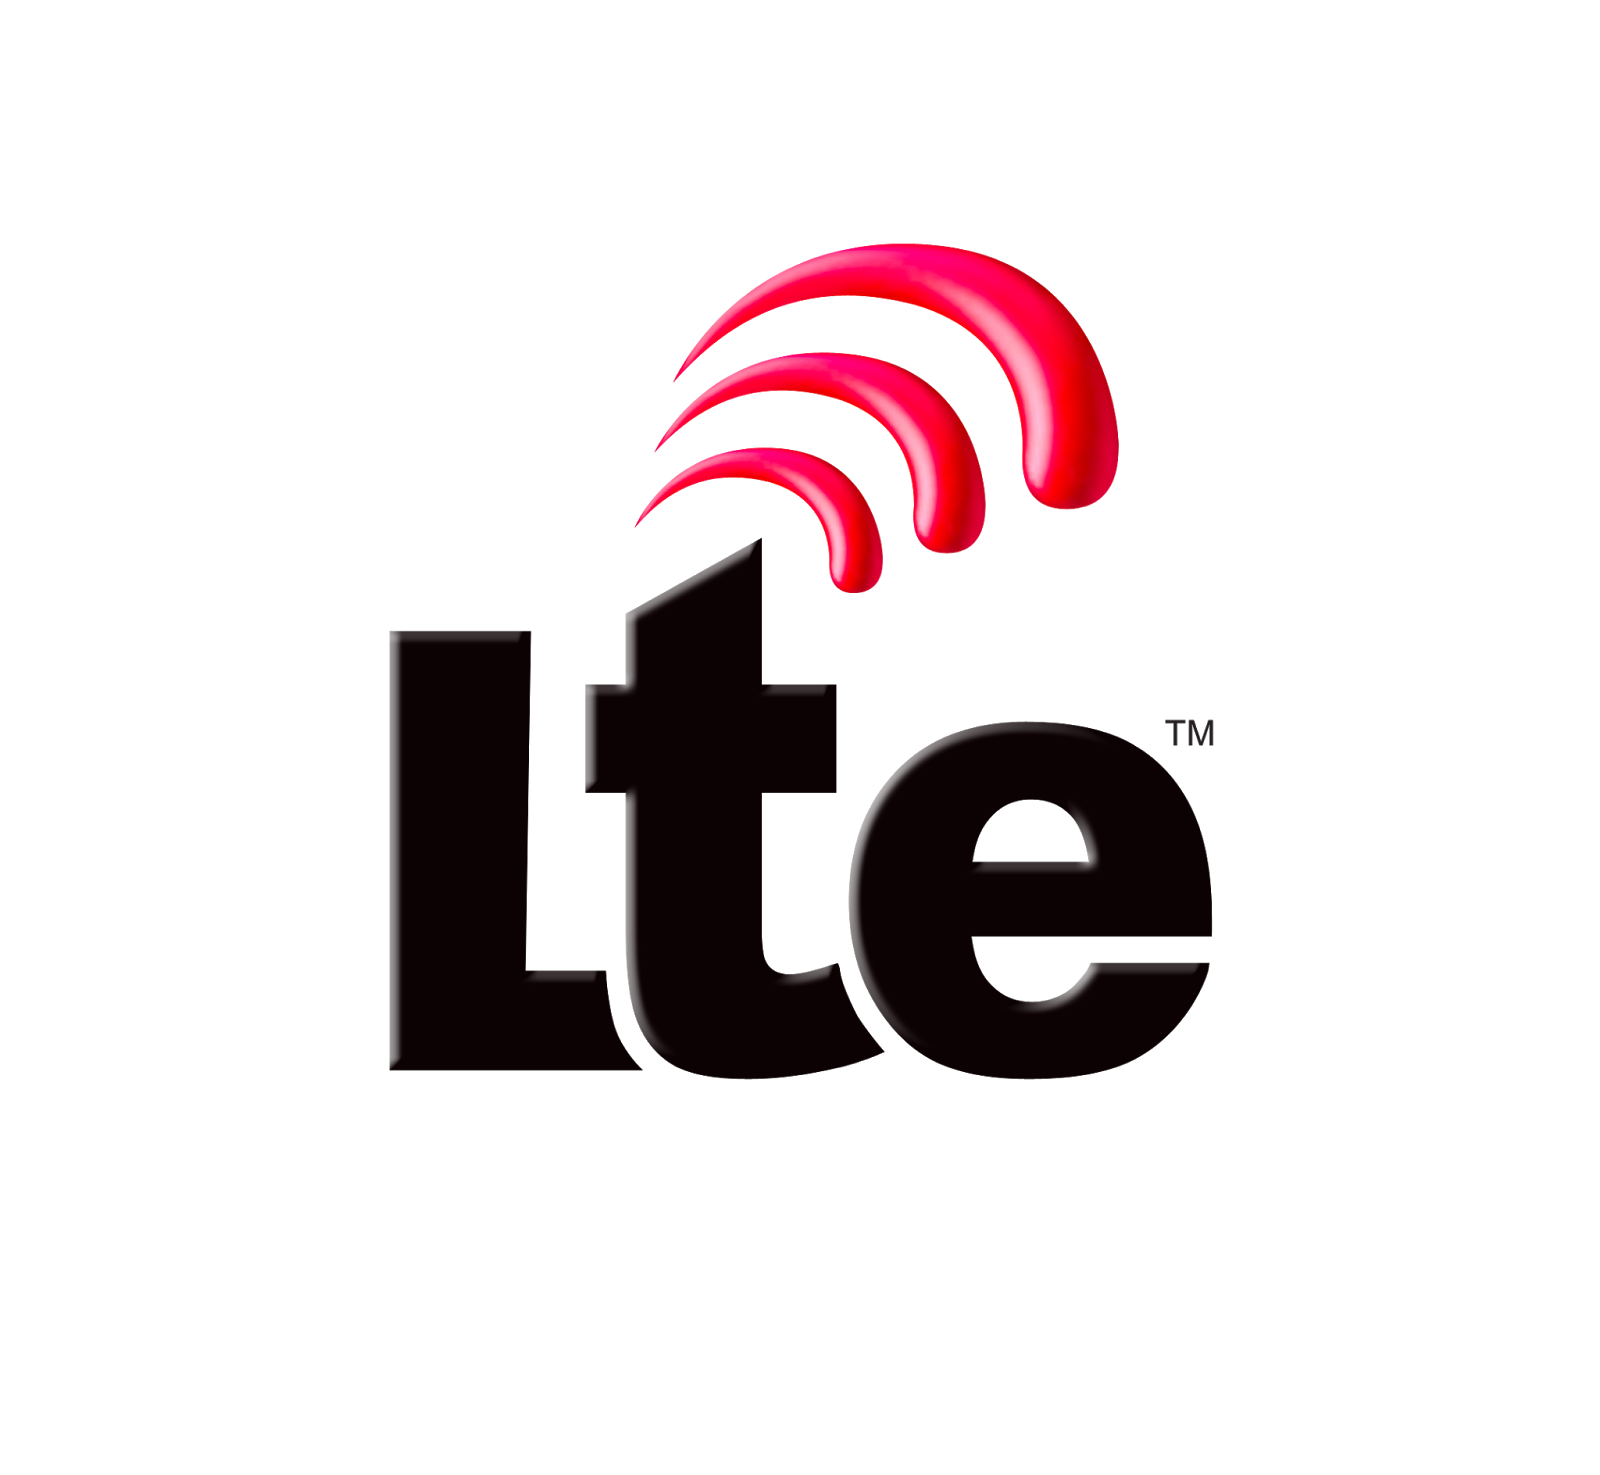 LTE Logo photo - 1